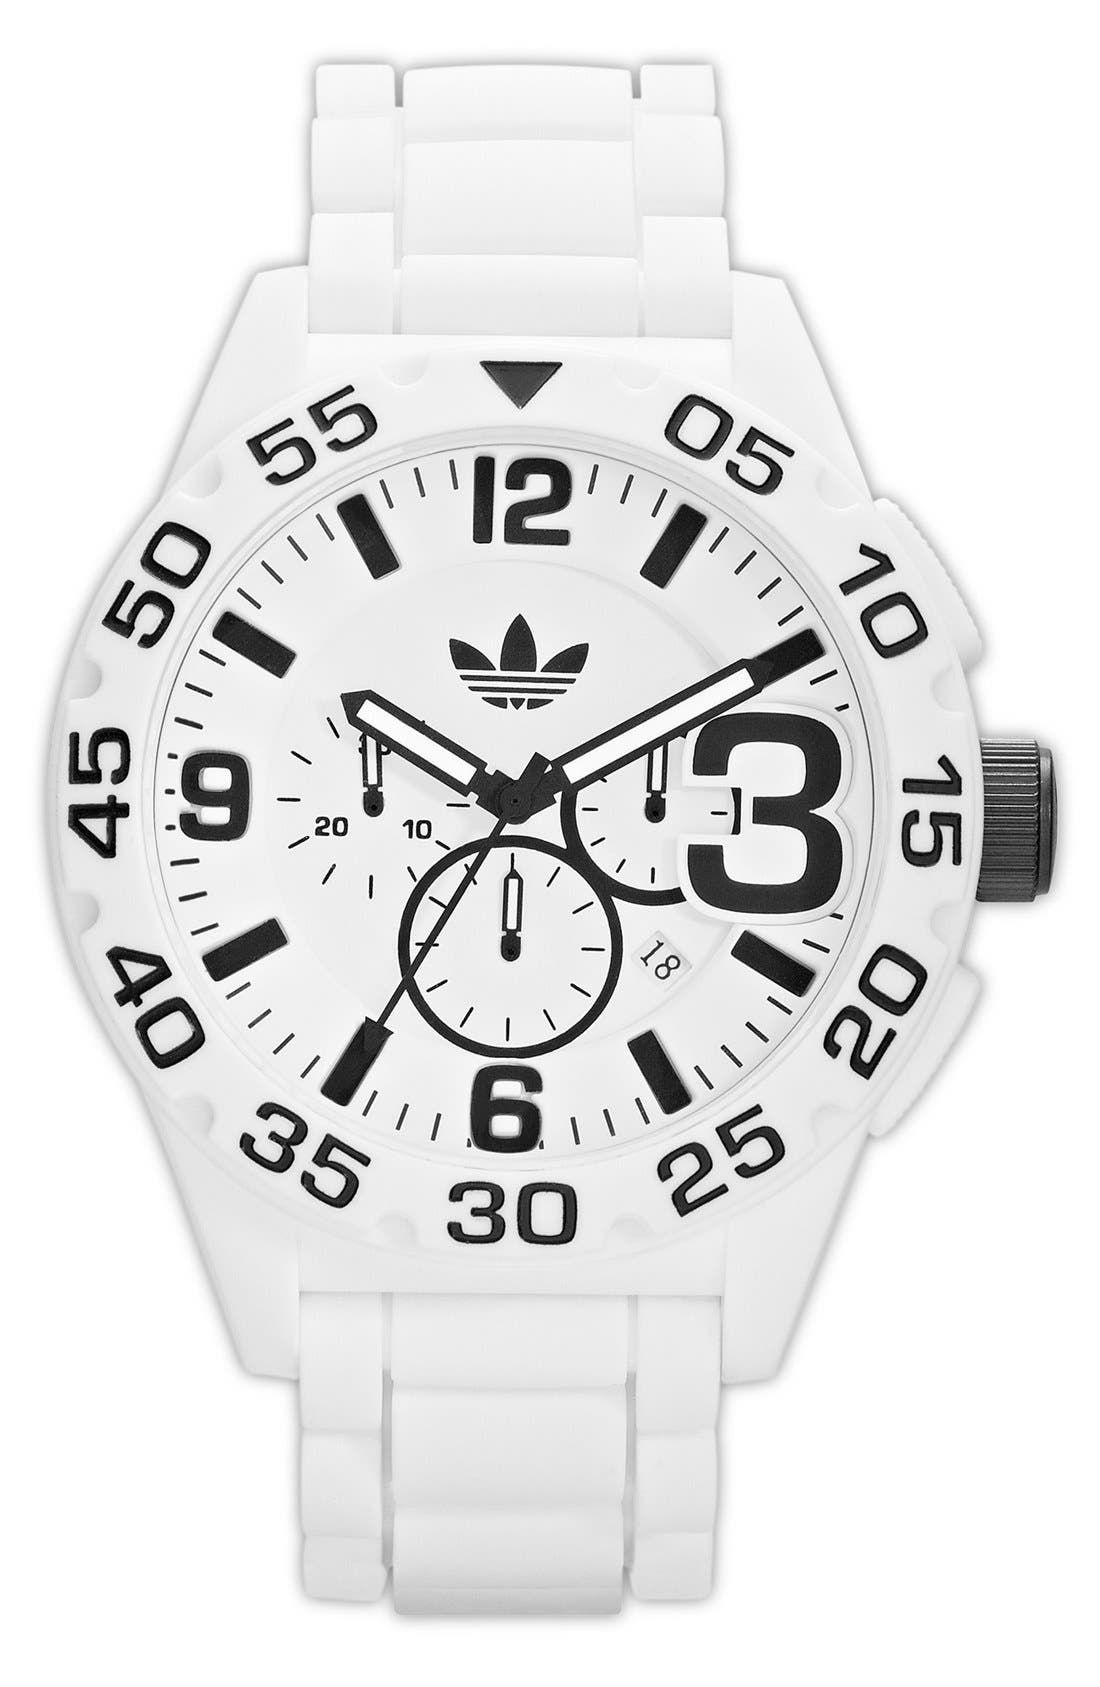 Main Image - adidas Originals 'Newburgh' Chronograph Watch, 48mm